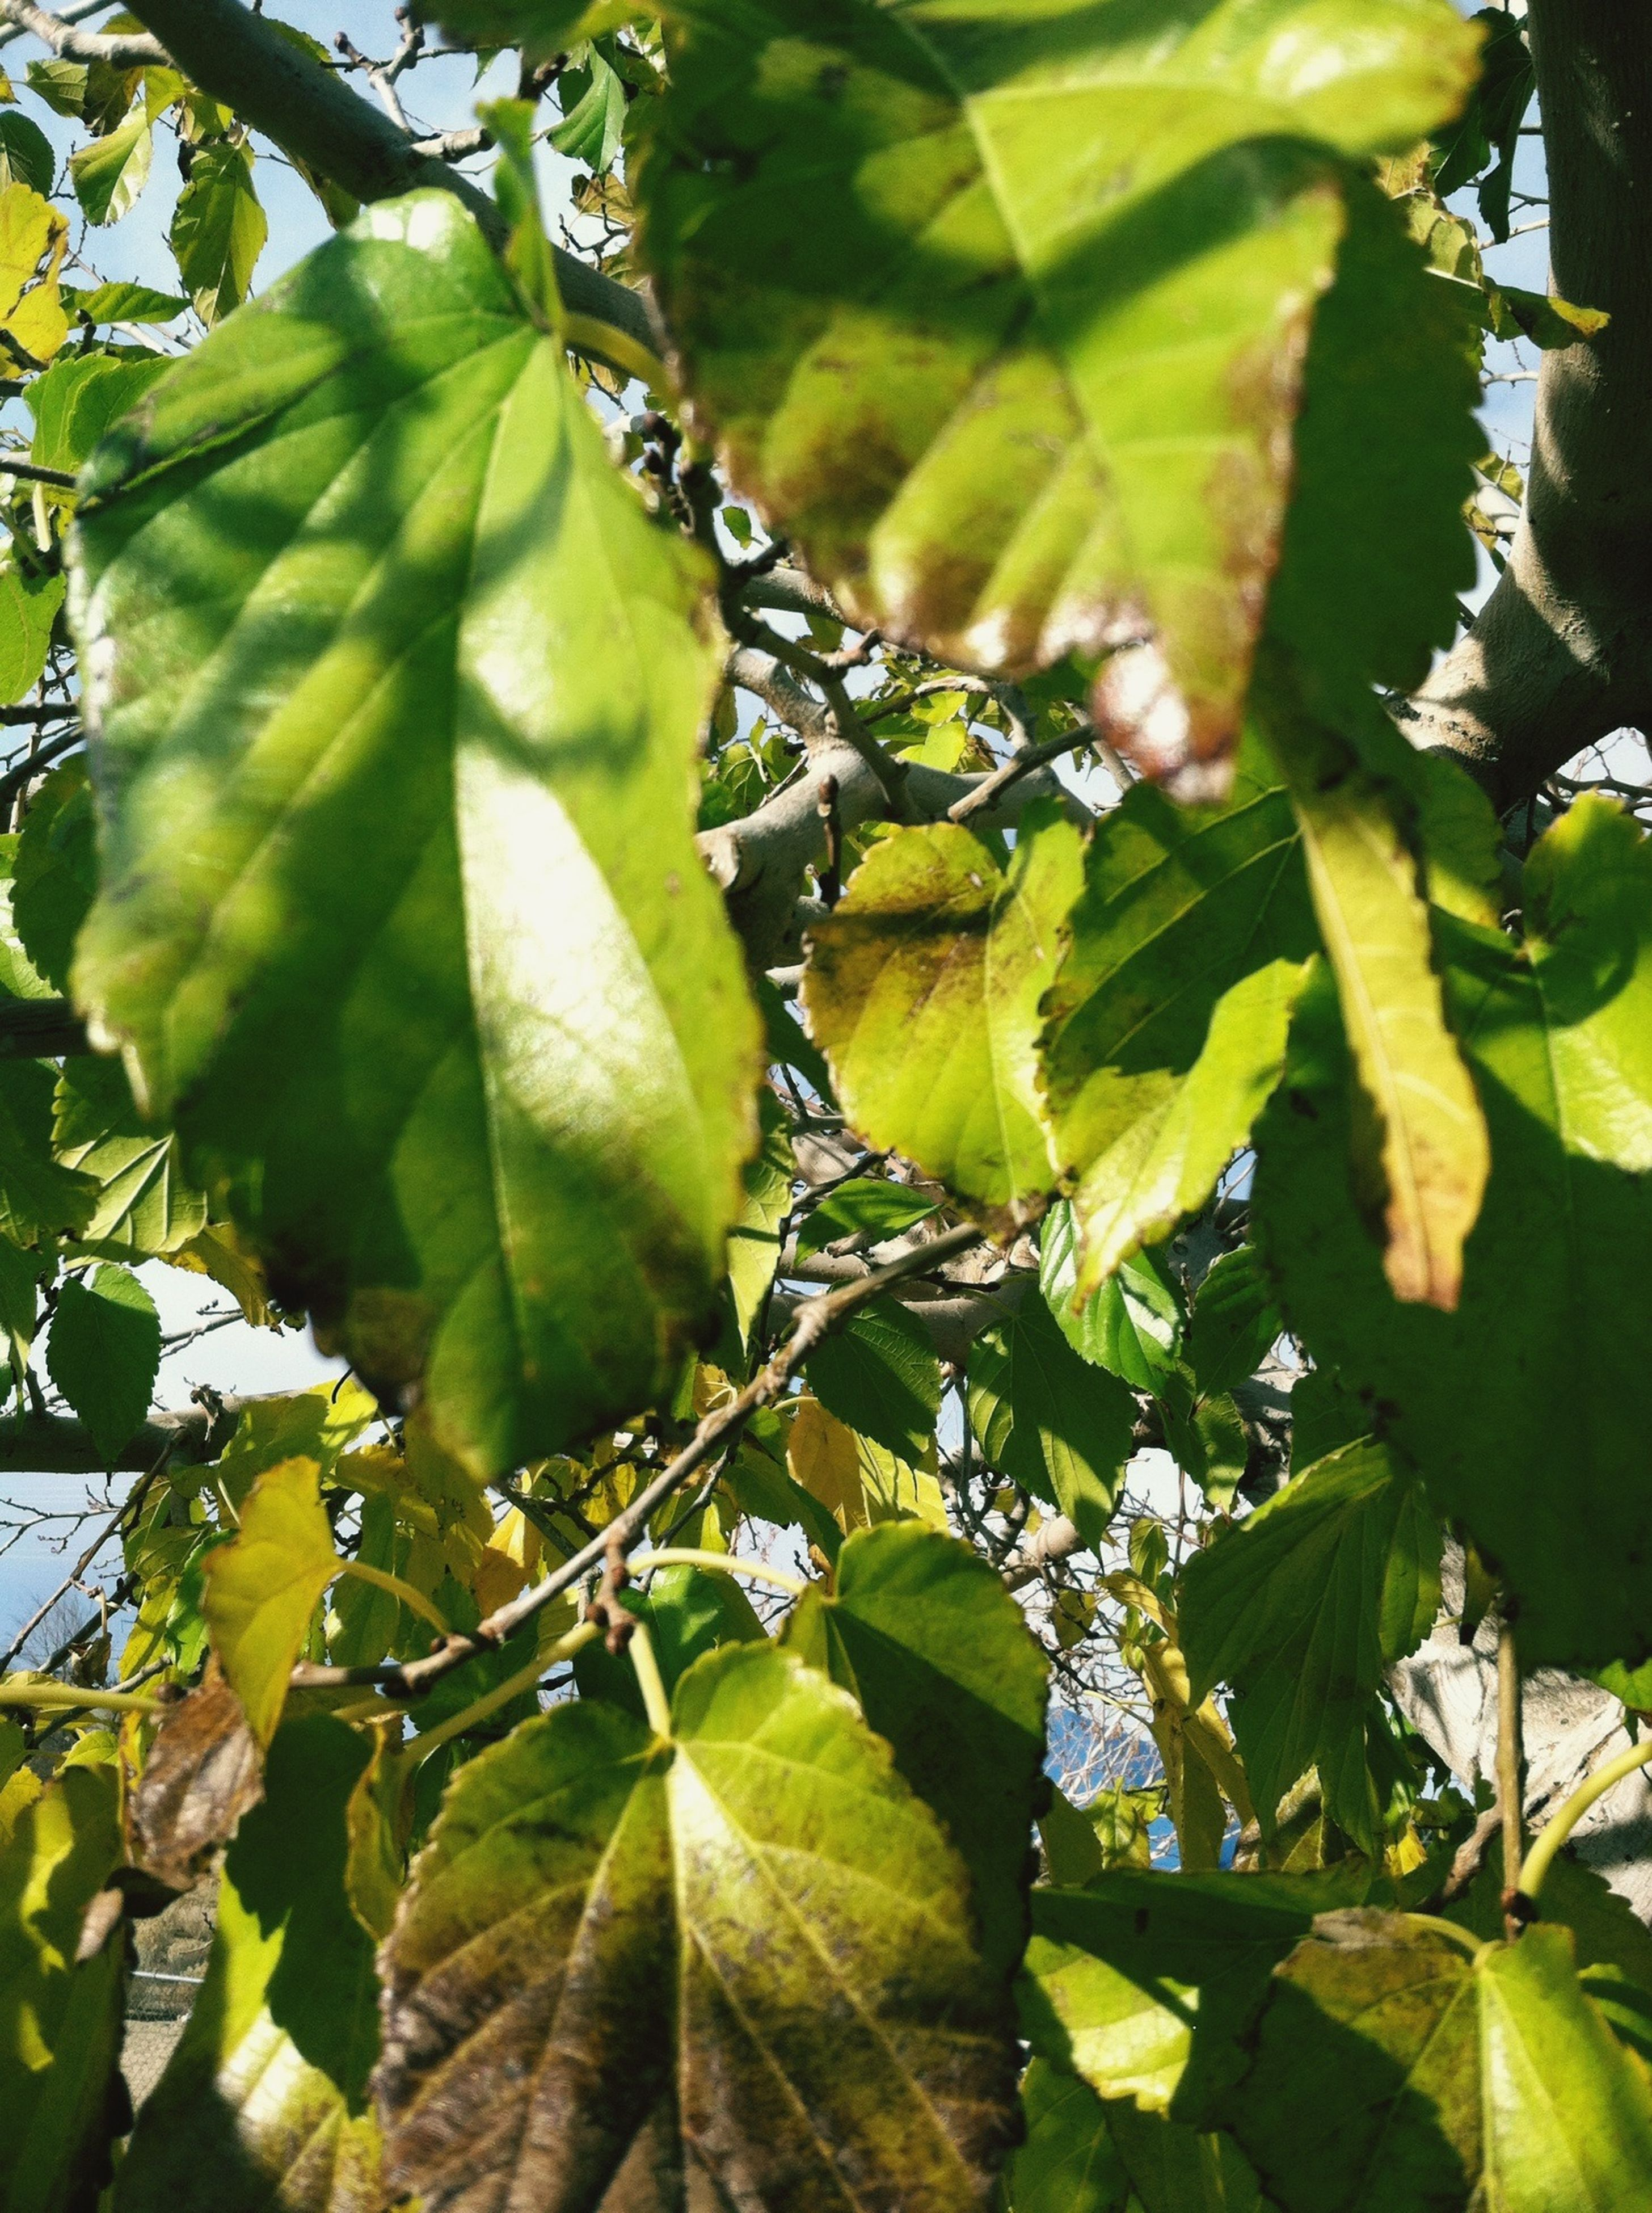 leaf, green color, growth, branch, nature, tree, leaf vein, plant, close-up, leaves, beauty in nature, focus on foreground, sunlight, freshness, low angle view, day, outdoors, green, tranquility, no people